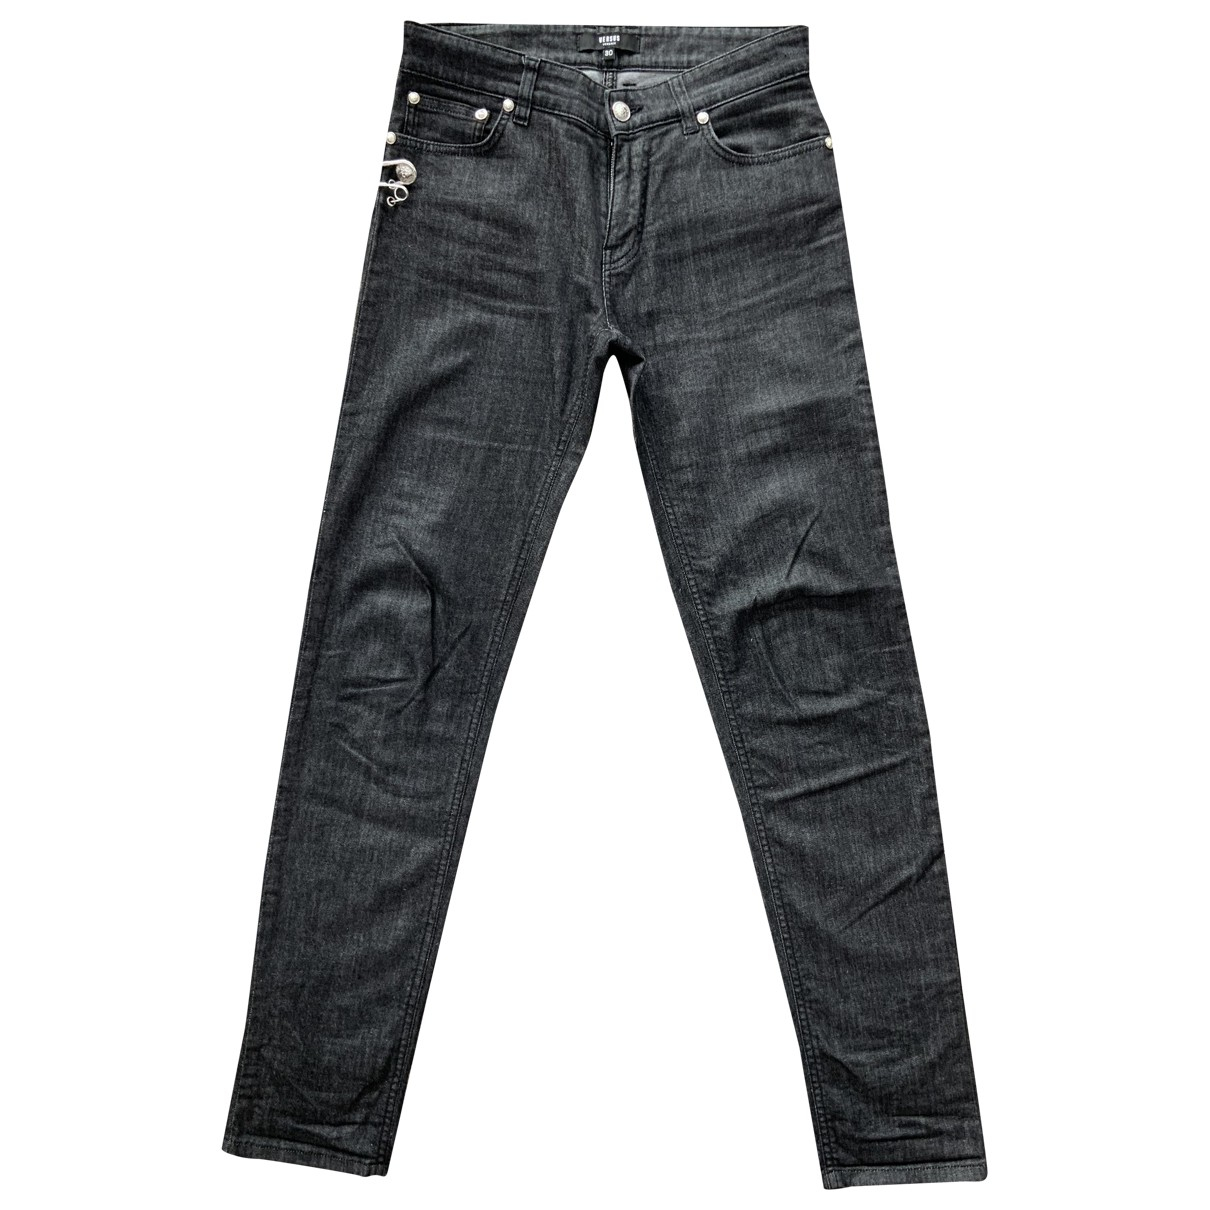 Versus \N Grey Cotton - elasthane Jeans for Men 30 US